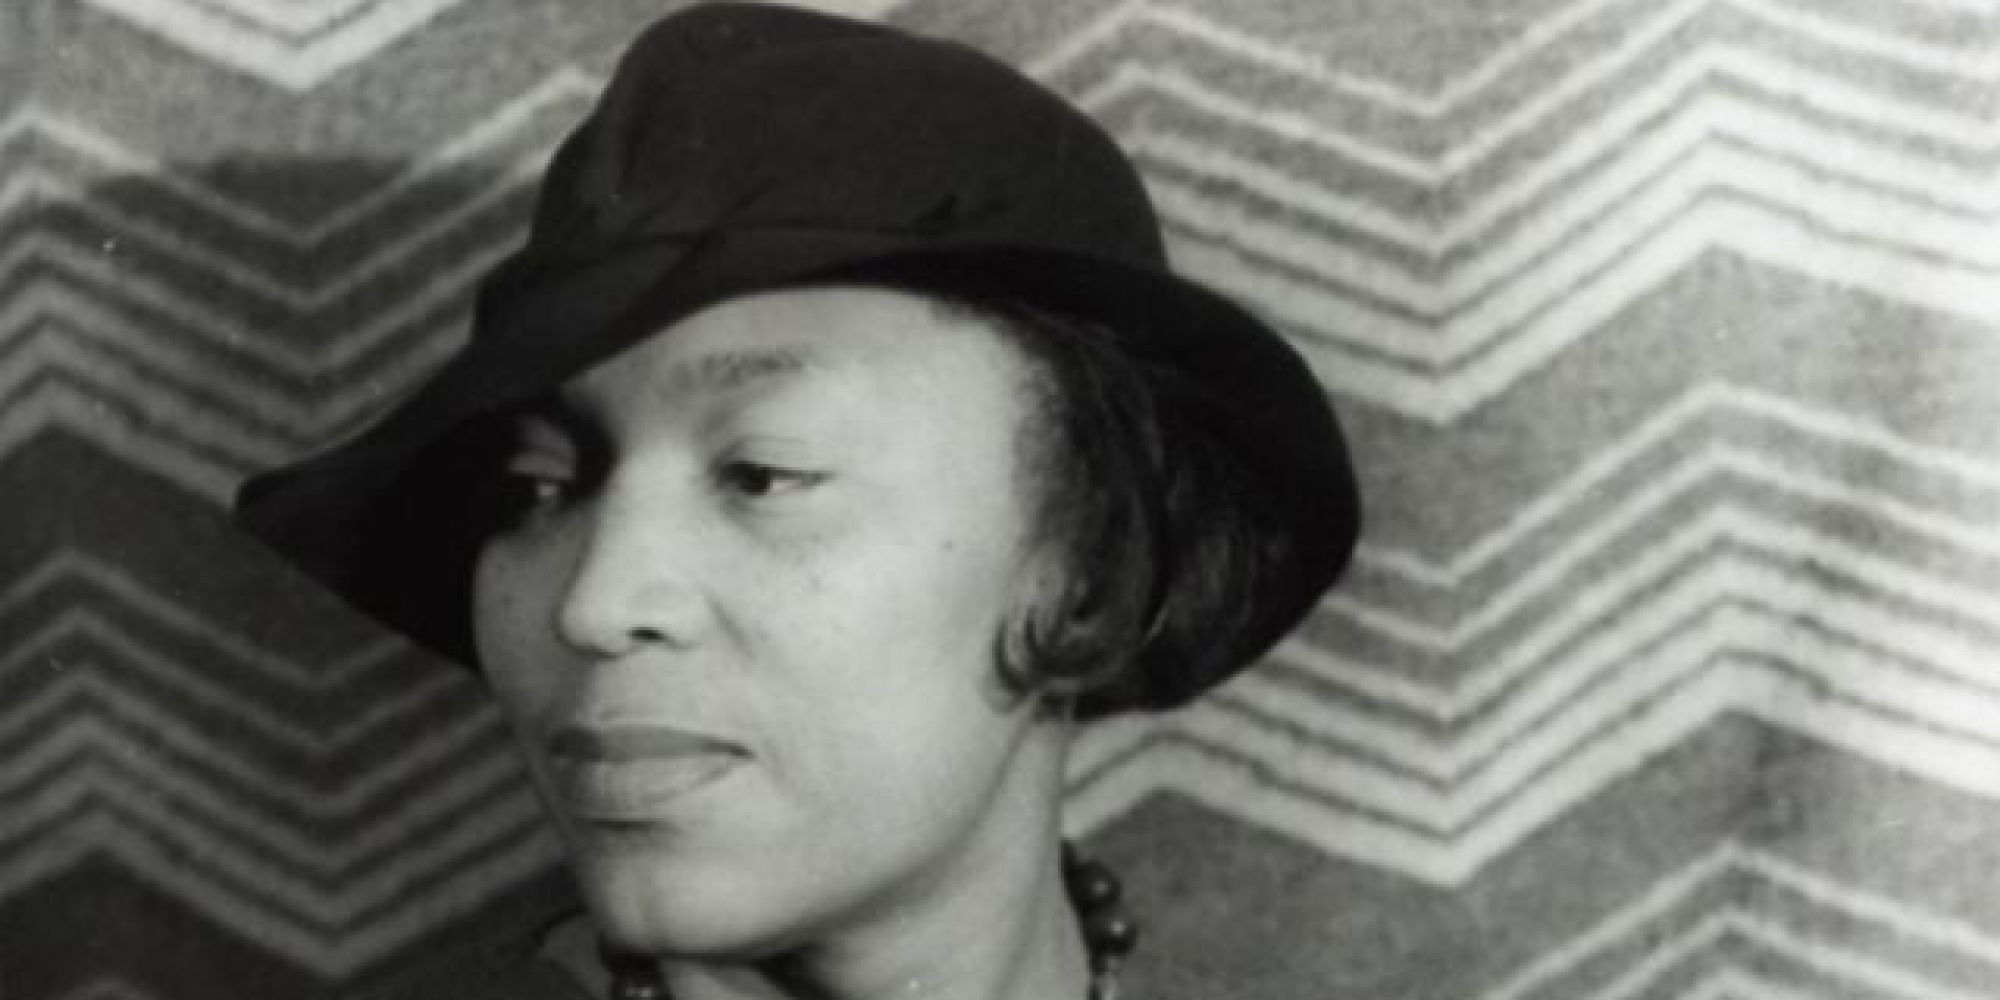 zora neale hurston in the harlem Zora neal hurston was an american author, folklorist, and anthropologist  publishing more than 50 plays, essays, short stories novels, her best known work  is.